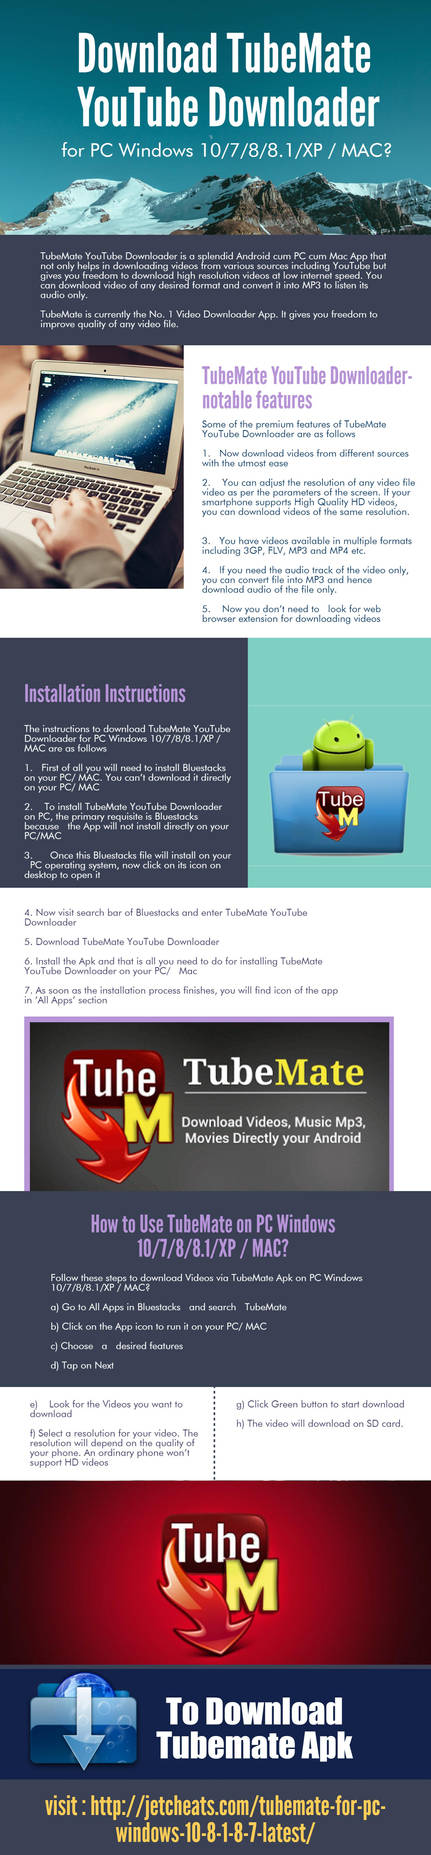 Download TubeMate YouTube Downloader for PC Window by